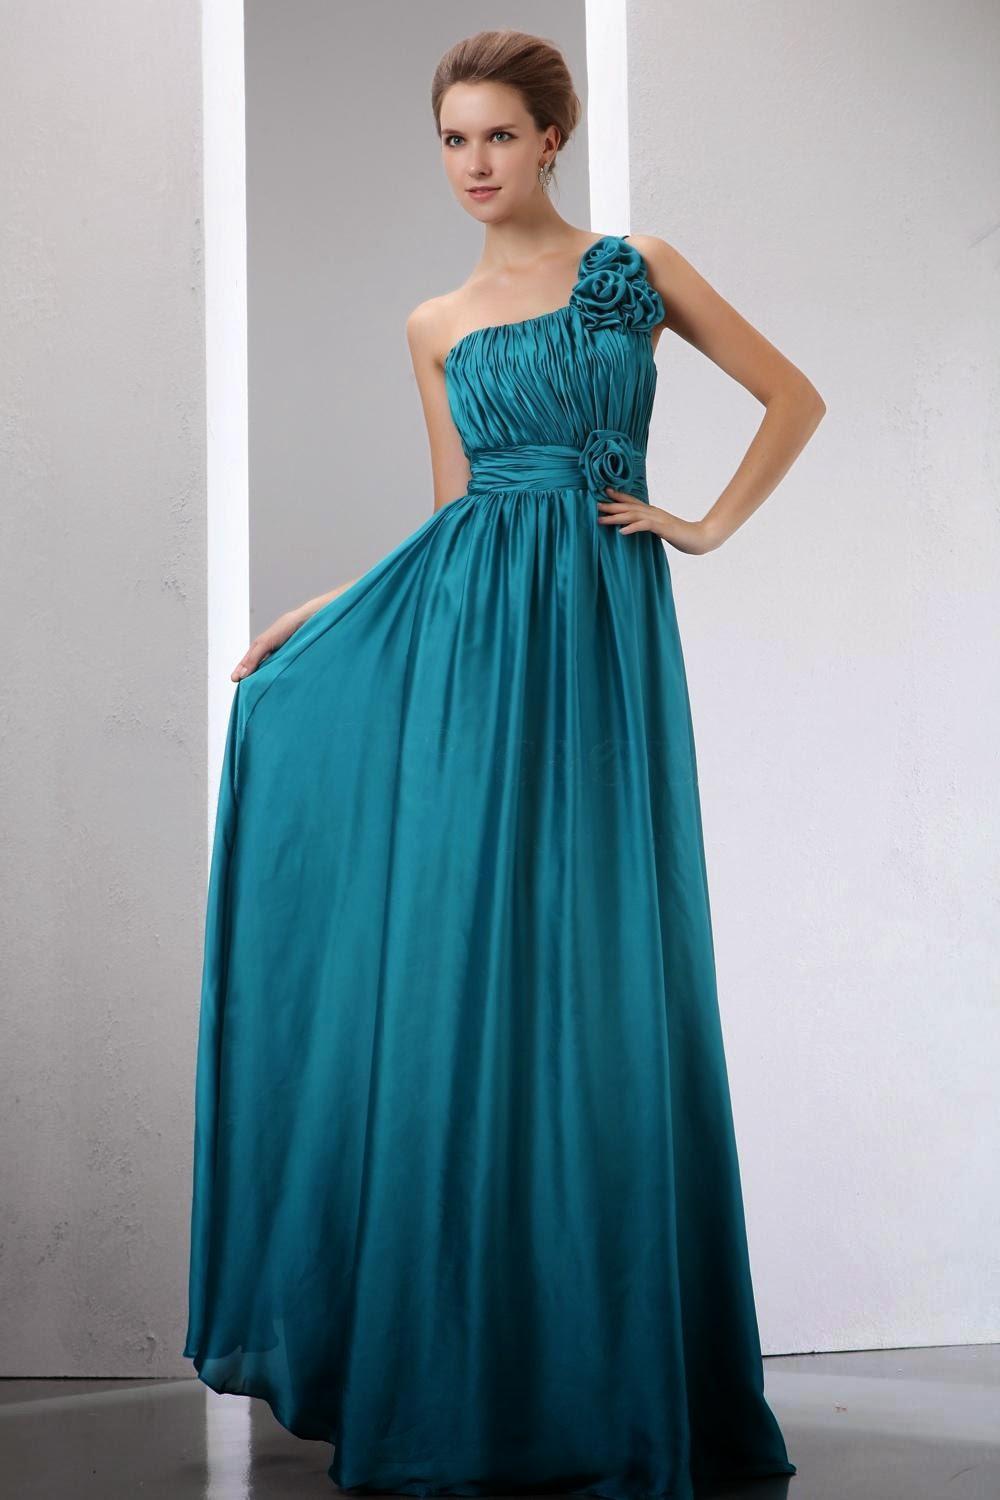 prom dress: Hair style and prom dresses